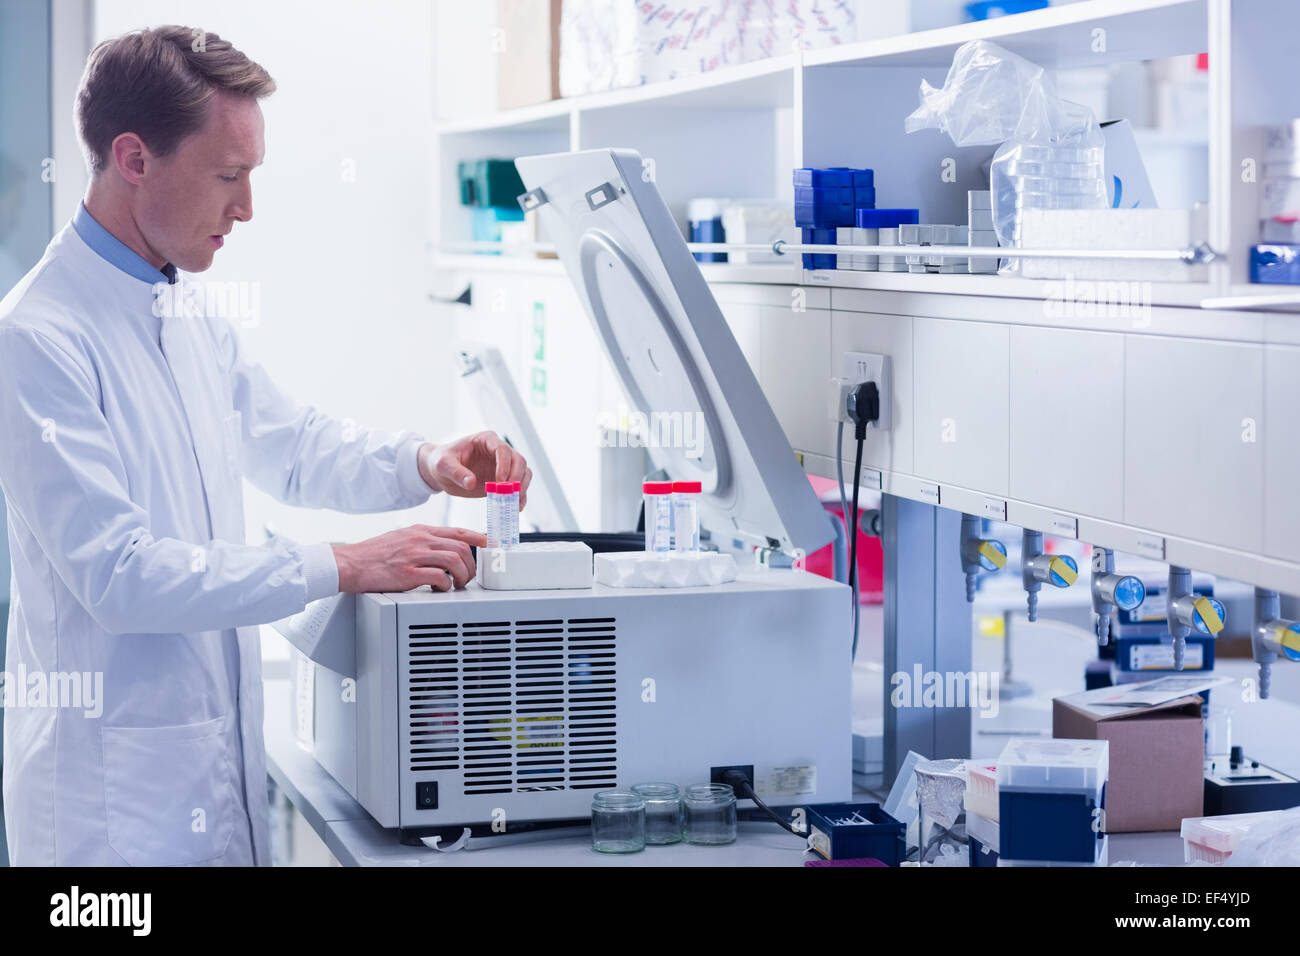 Focused chemist doing an experiment - Stock Image